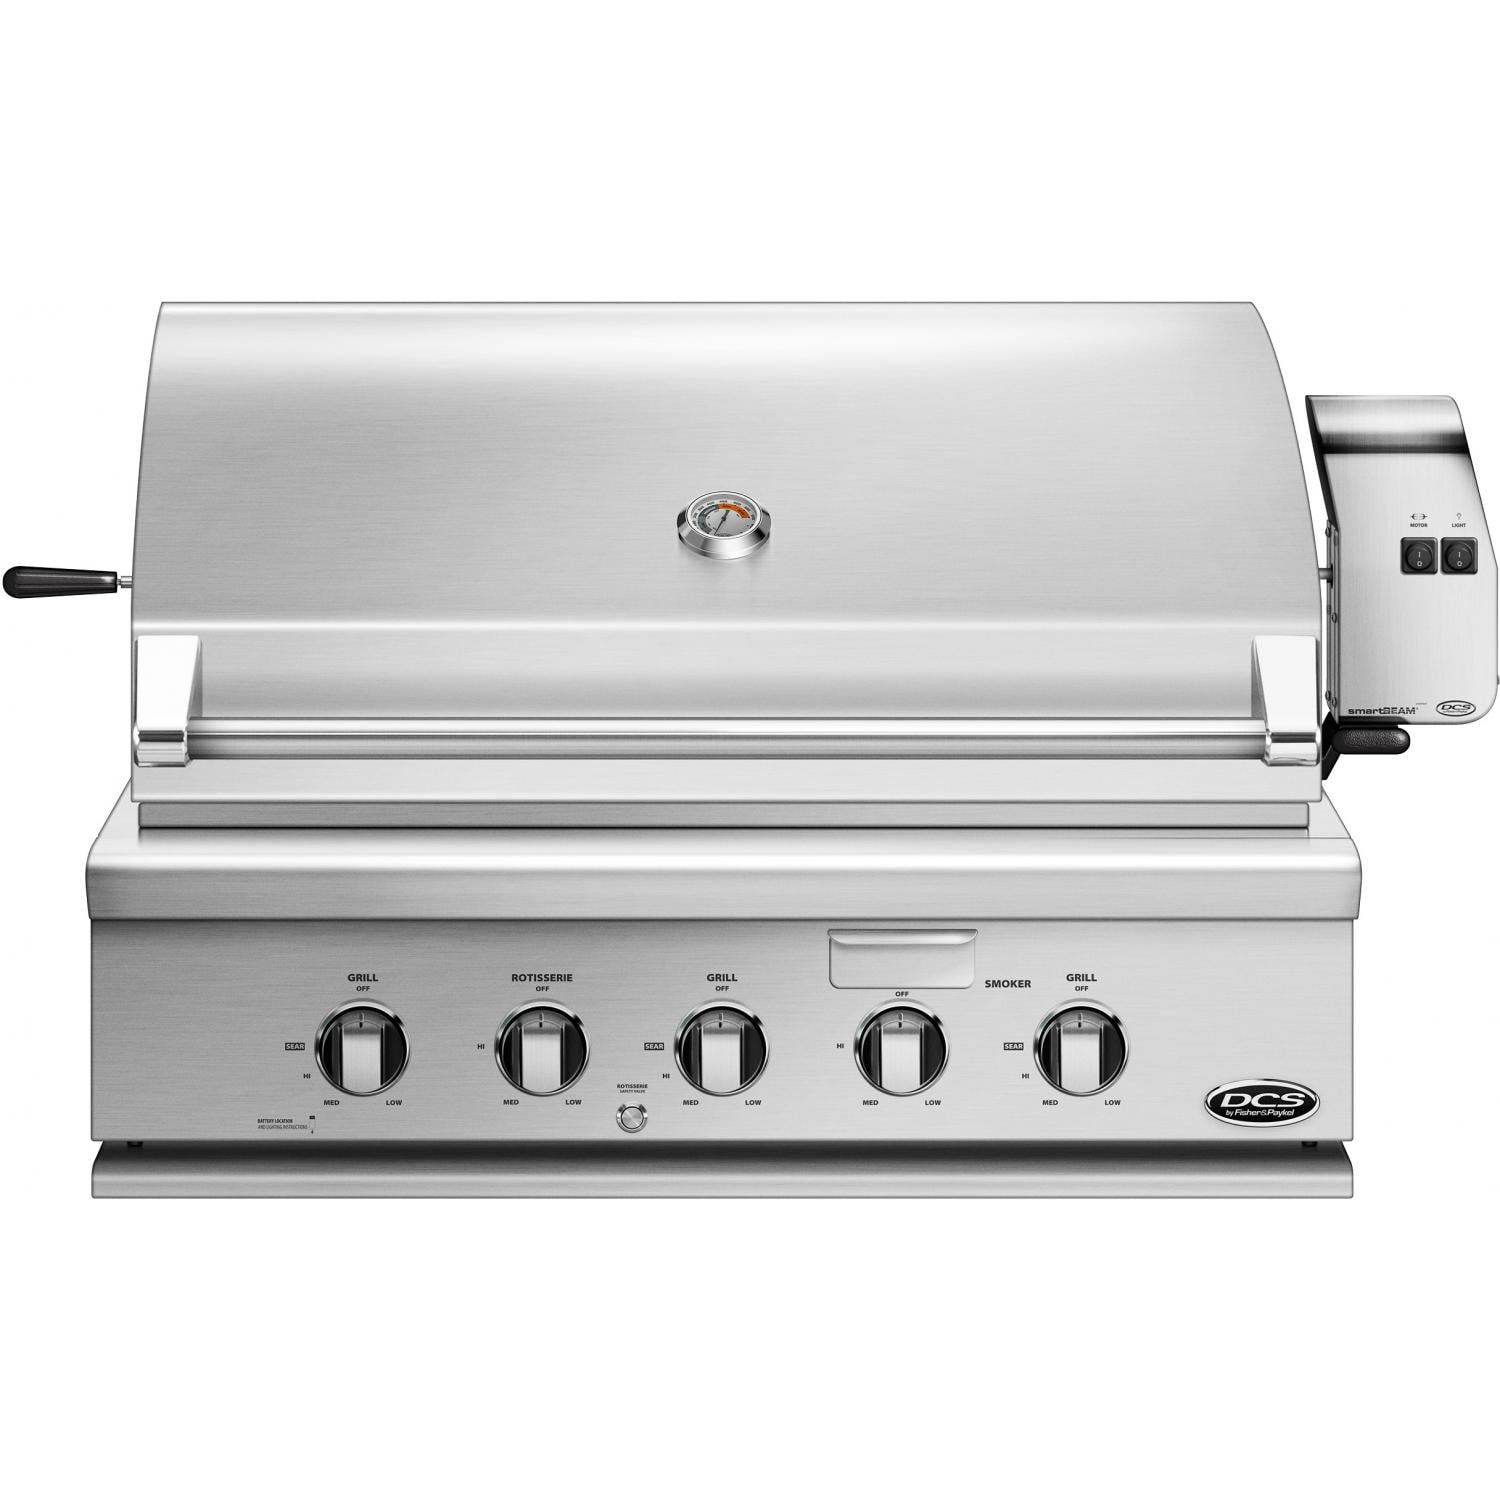 DCS Professional Built-In Gas Grill